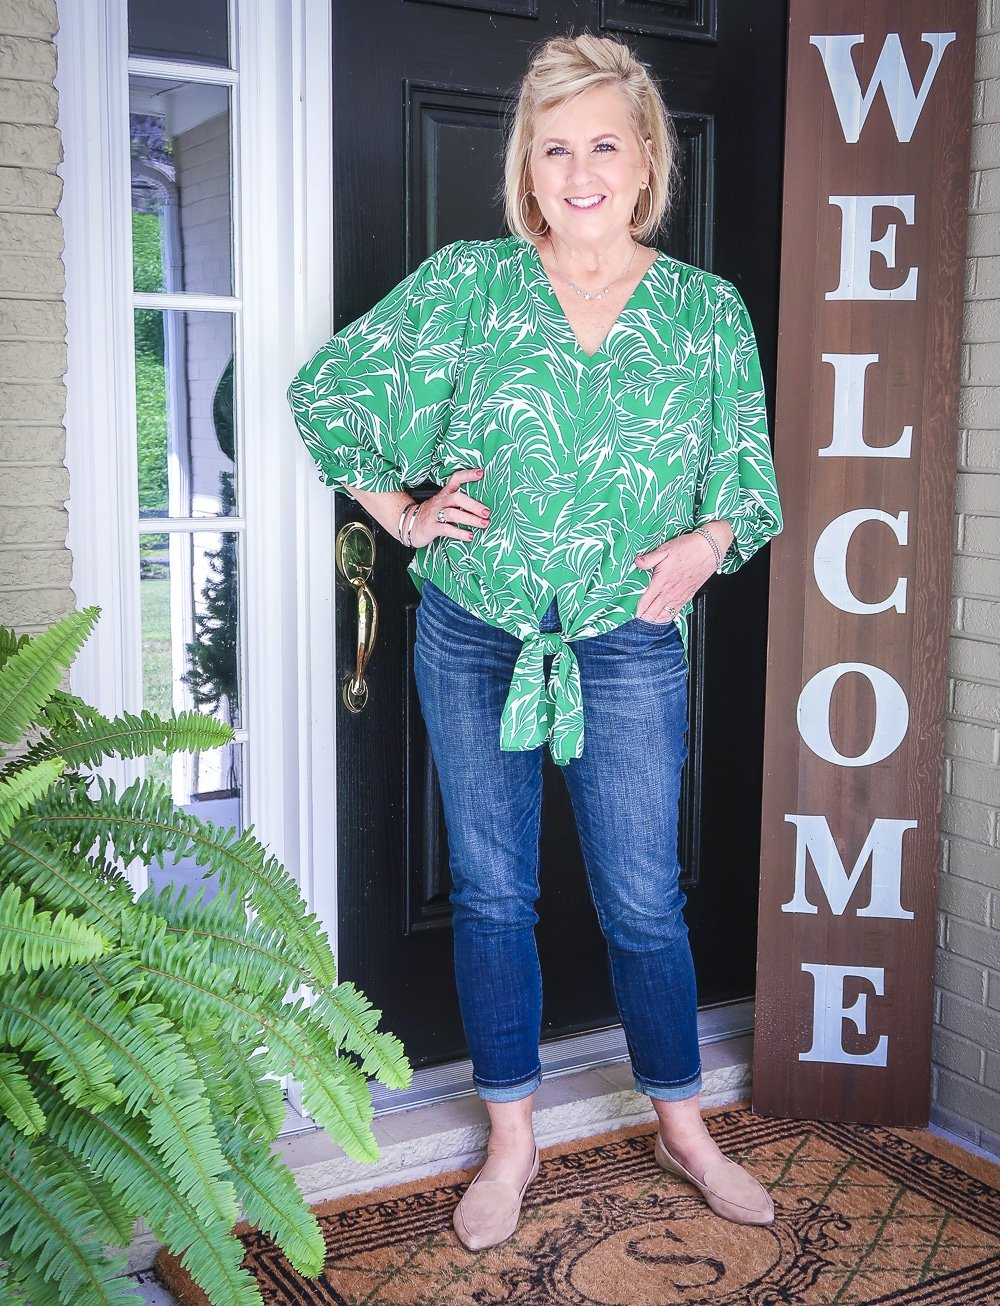 Fashion Blogger 50 Is Not Old has her hand in her pocket and is wearing a green palm print blouse and dark indigo girlfriend jeans with camel loafers